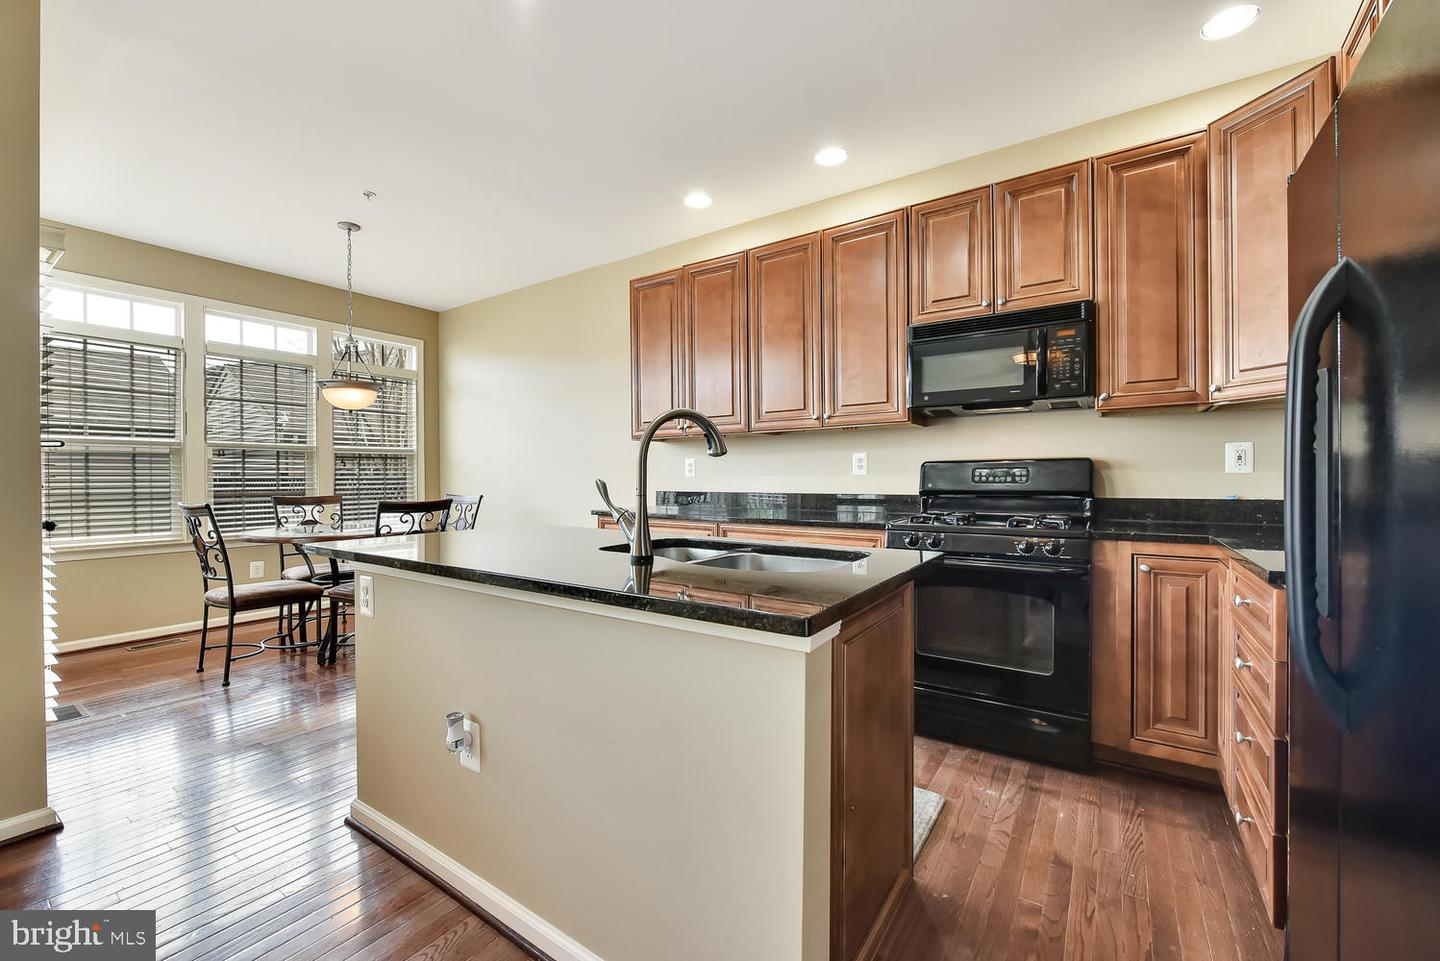 Additional photo for property listing at 2547 Island Grove Blvd Frederick, Maryland 21701 United States